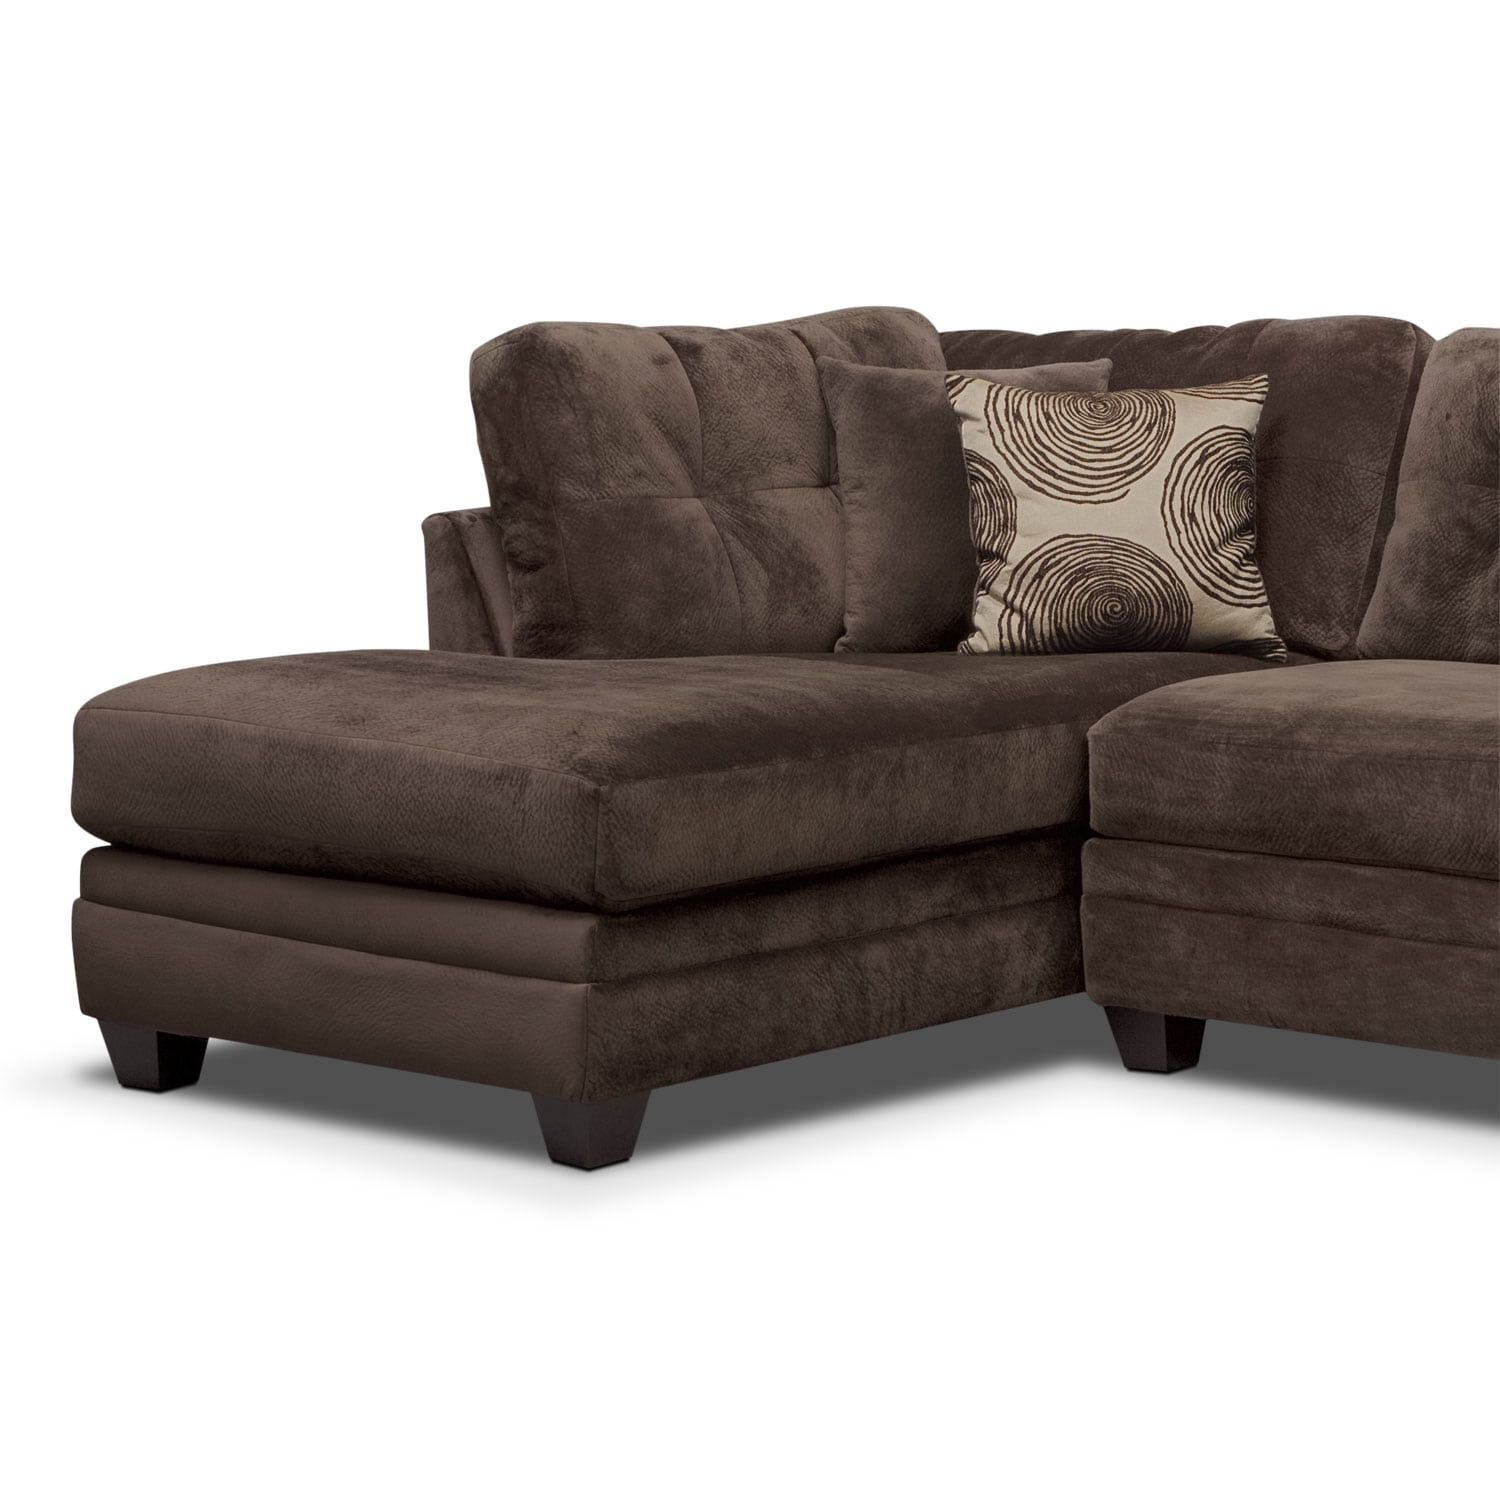 Peckham Sectional Sofa India: Cordelle 2-Piece Sectional With Left-Facing Chaise